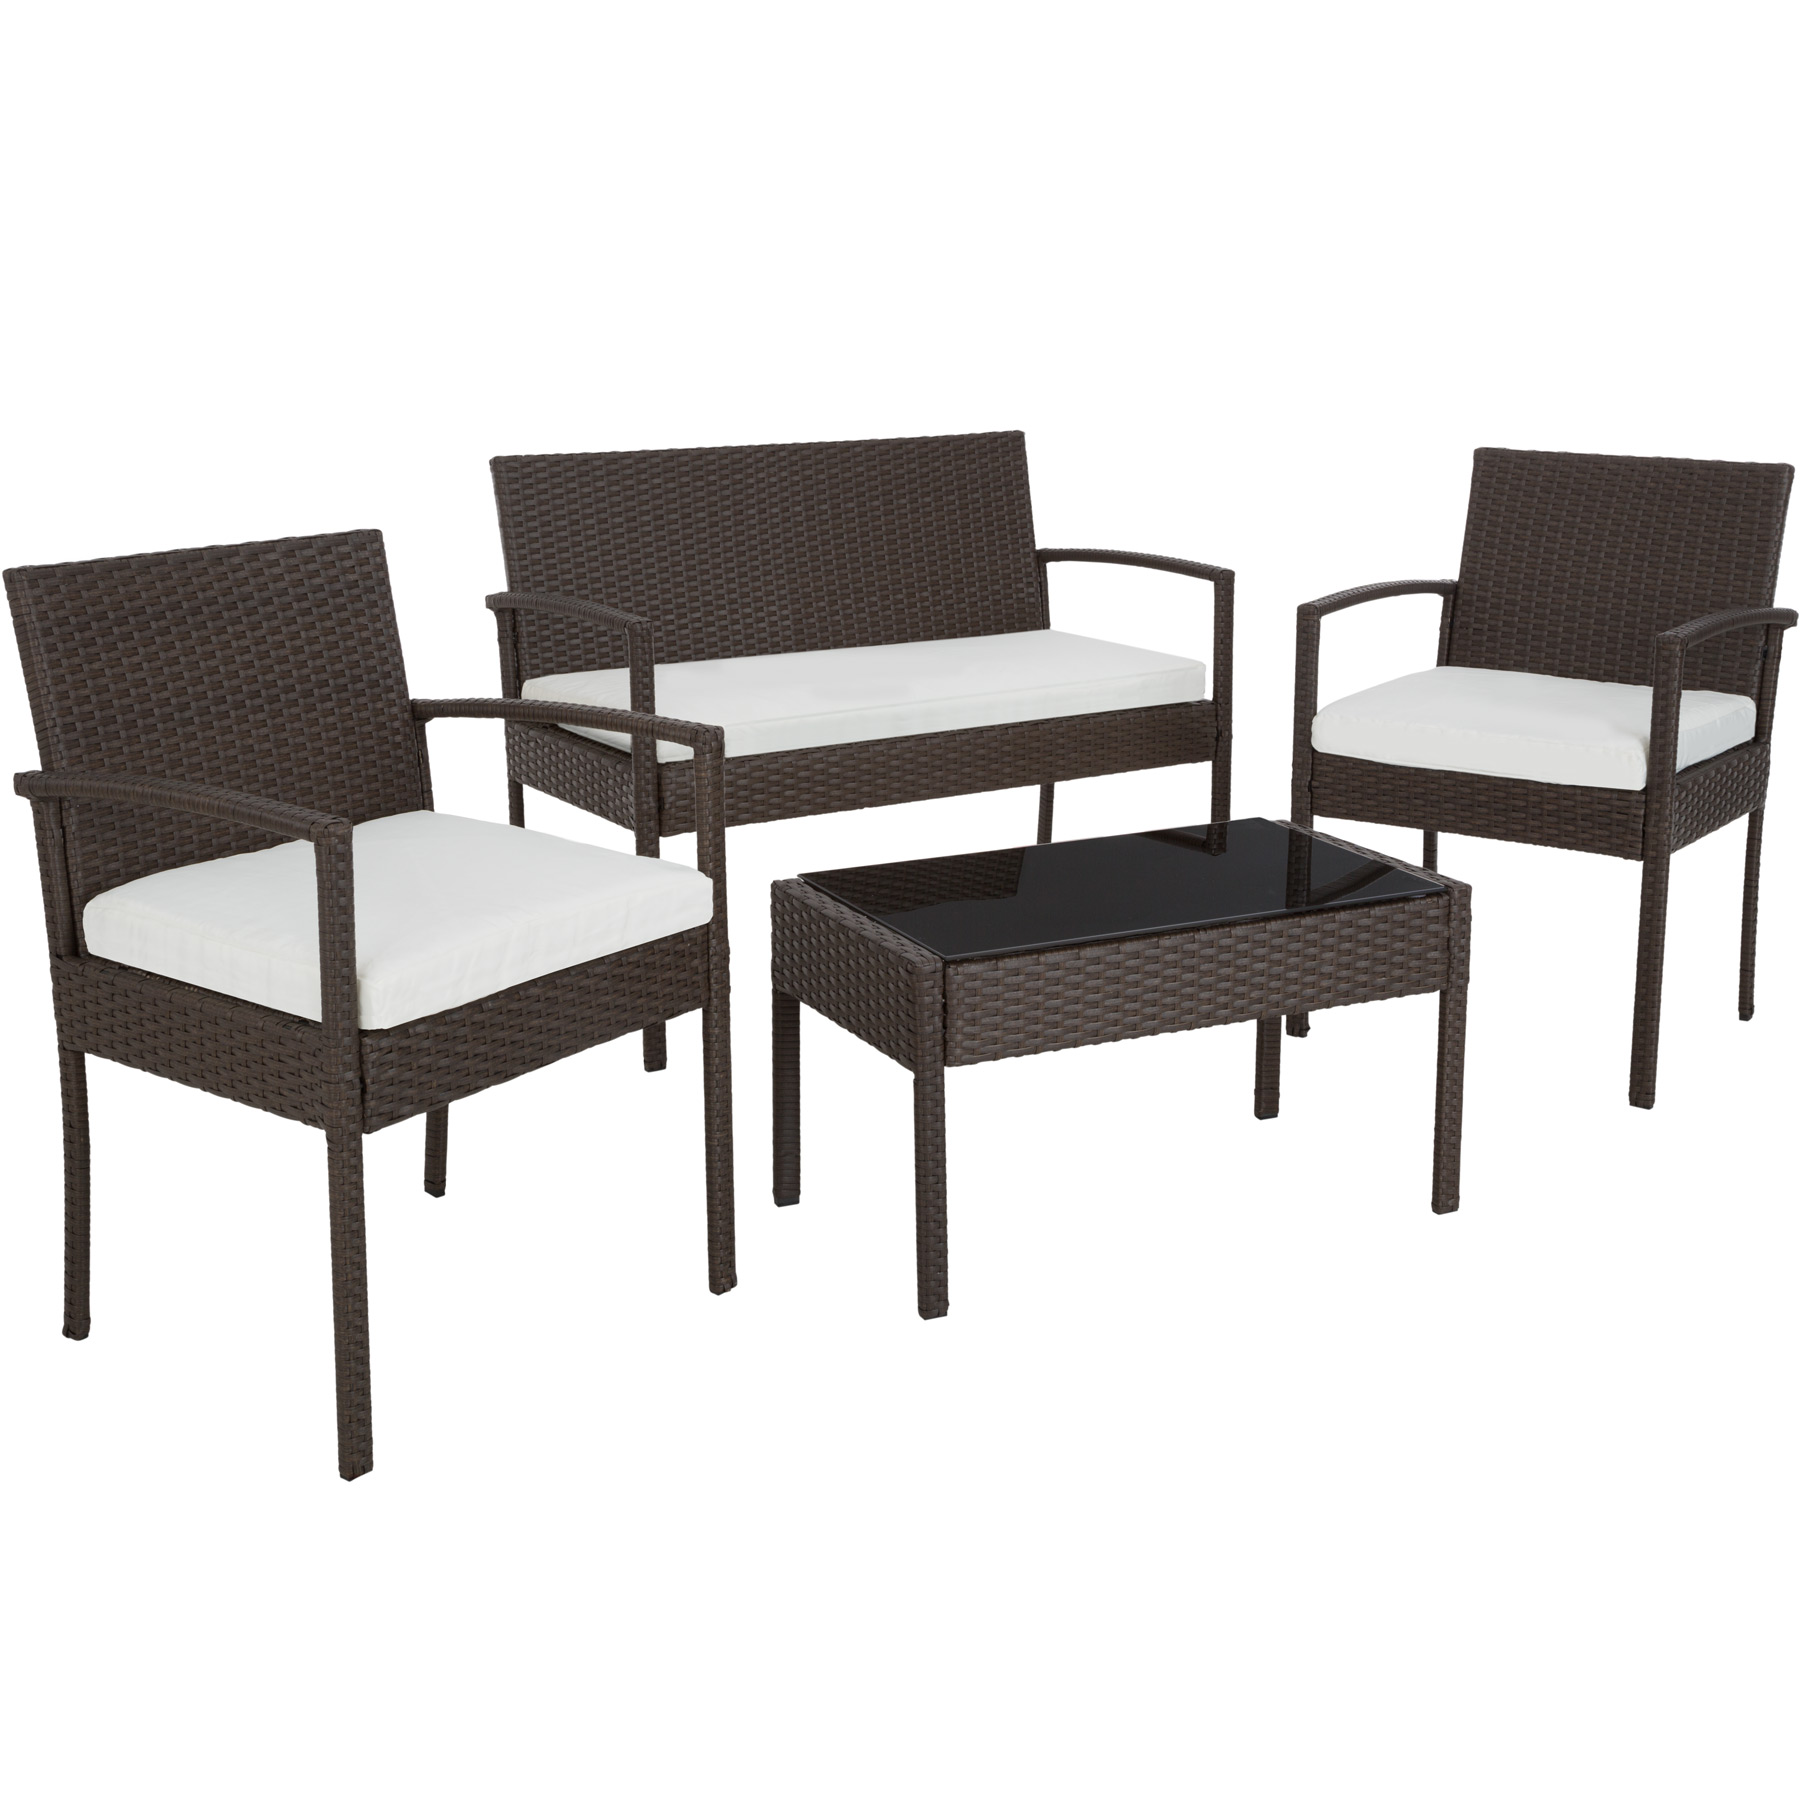 poly rattan garden furniture chairs bench table set. Black Bedroom Furniture Sets. Home Design Ideas